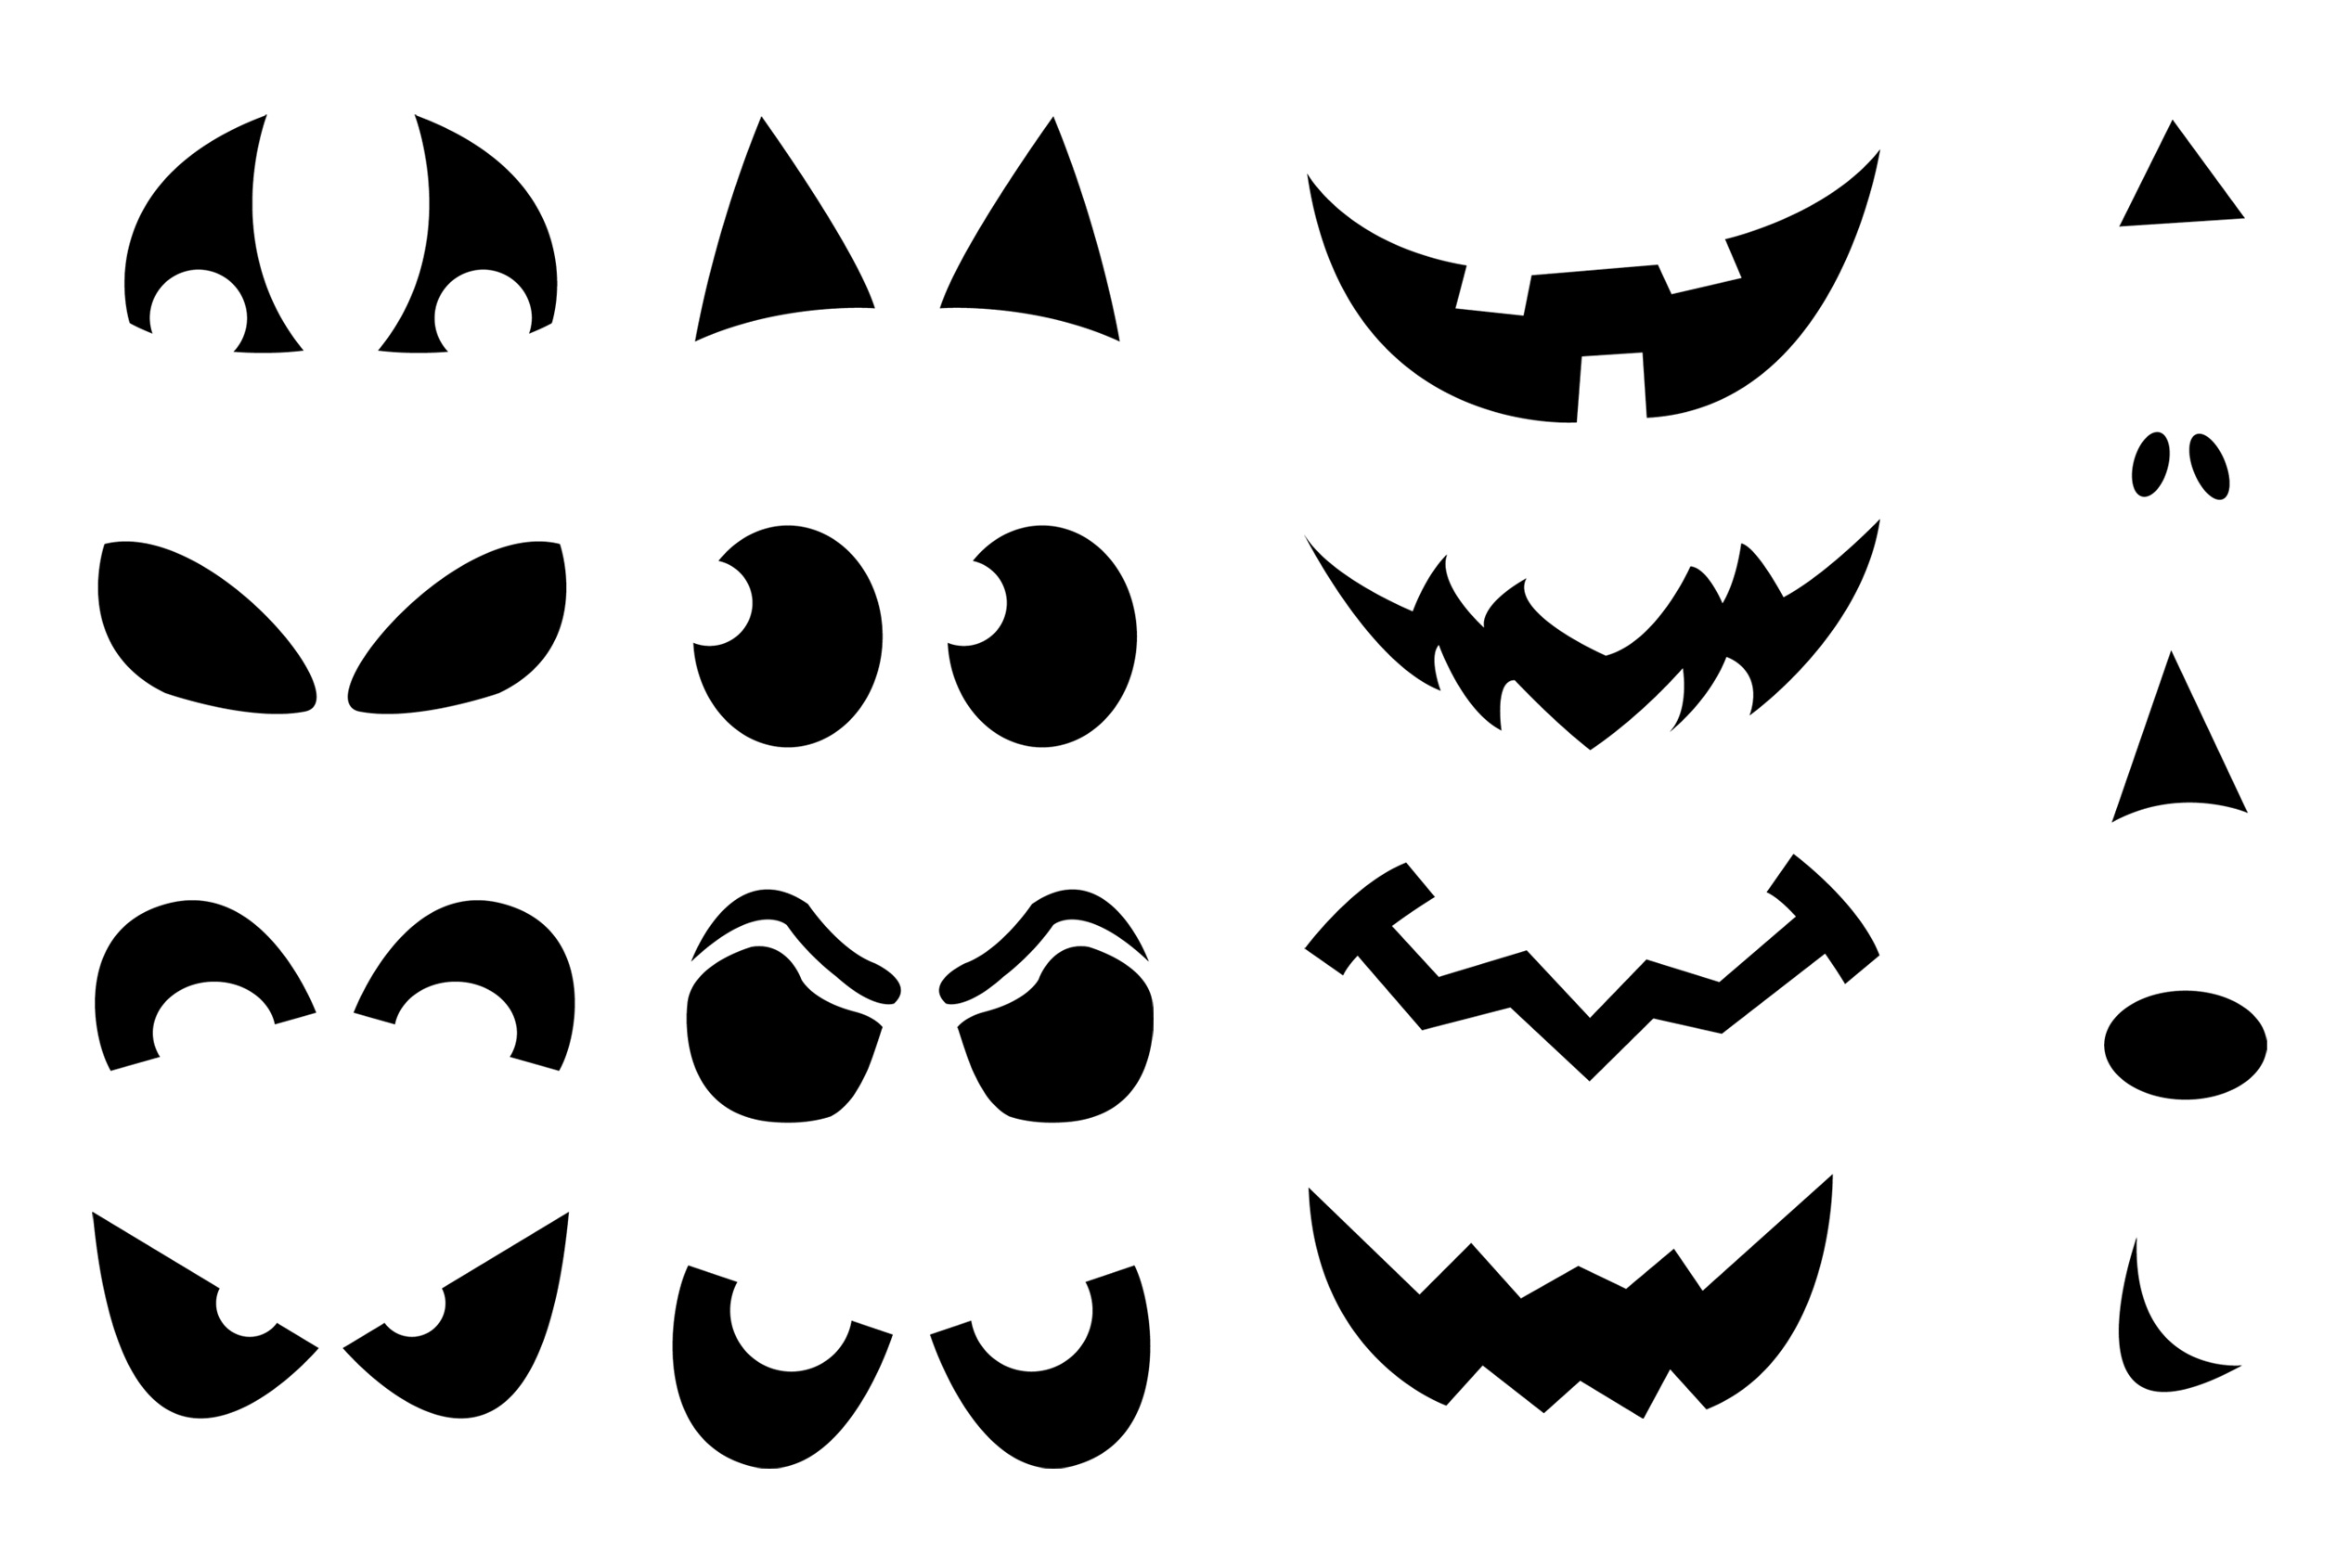 Printable Pumpkin Carving Cutouts For Halloween.